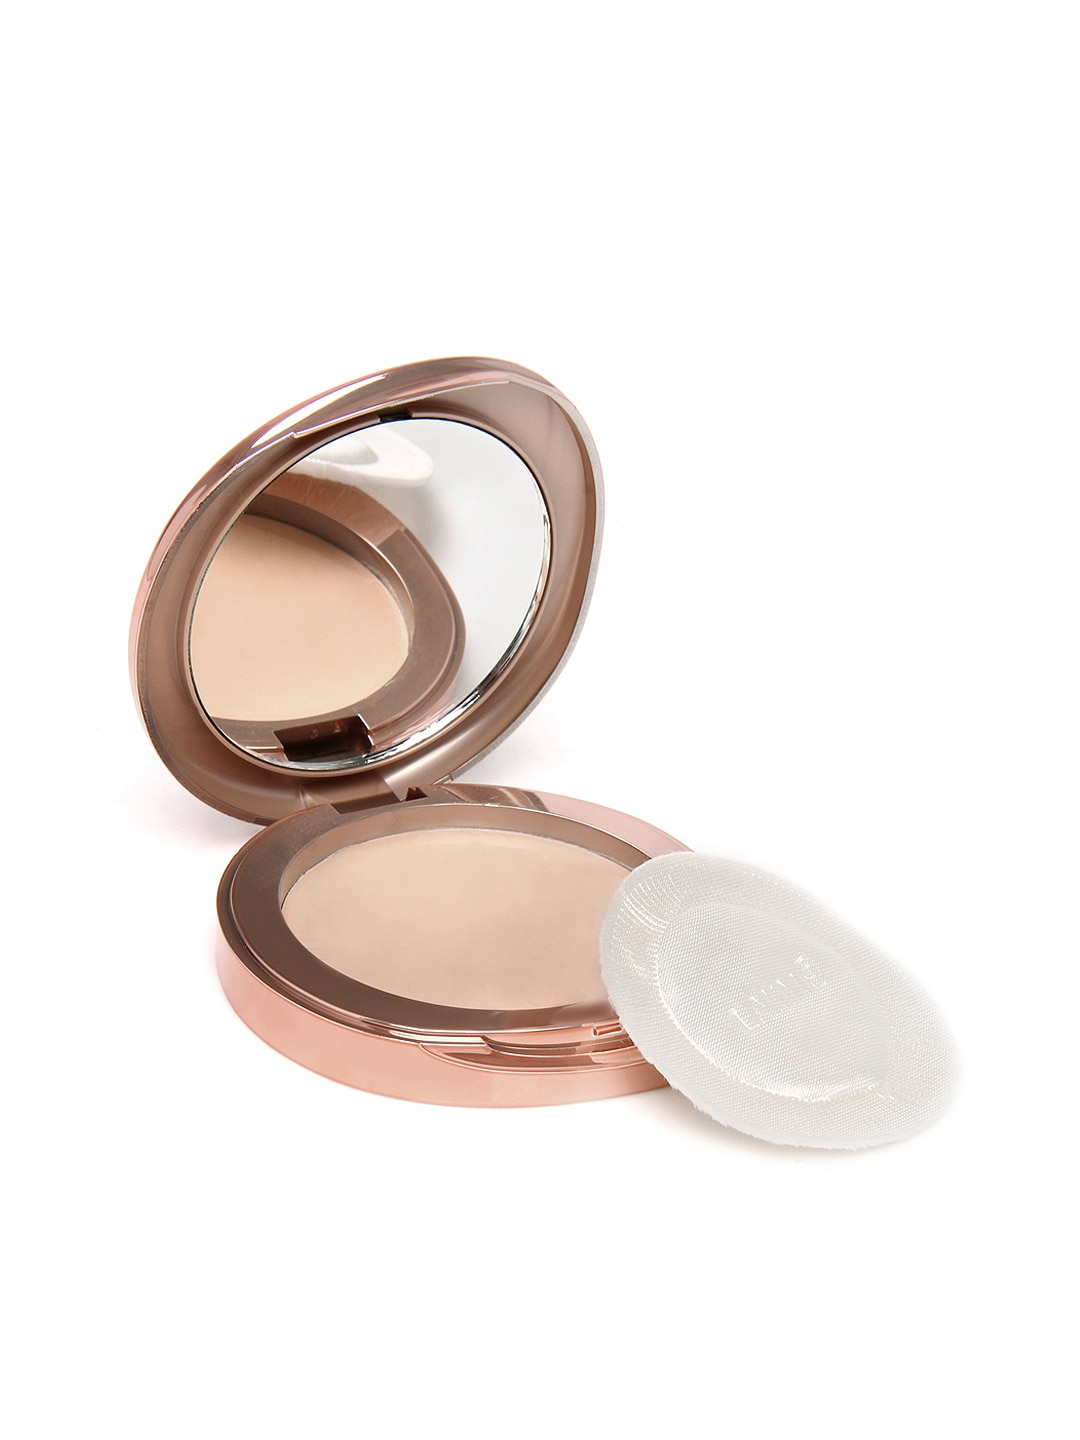 Lakme 9to5 Flawless Matte Complexion Almond Compact image